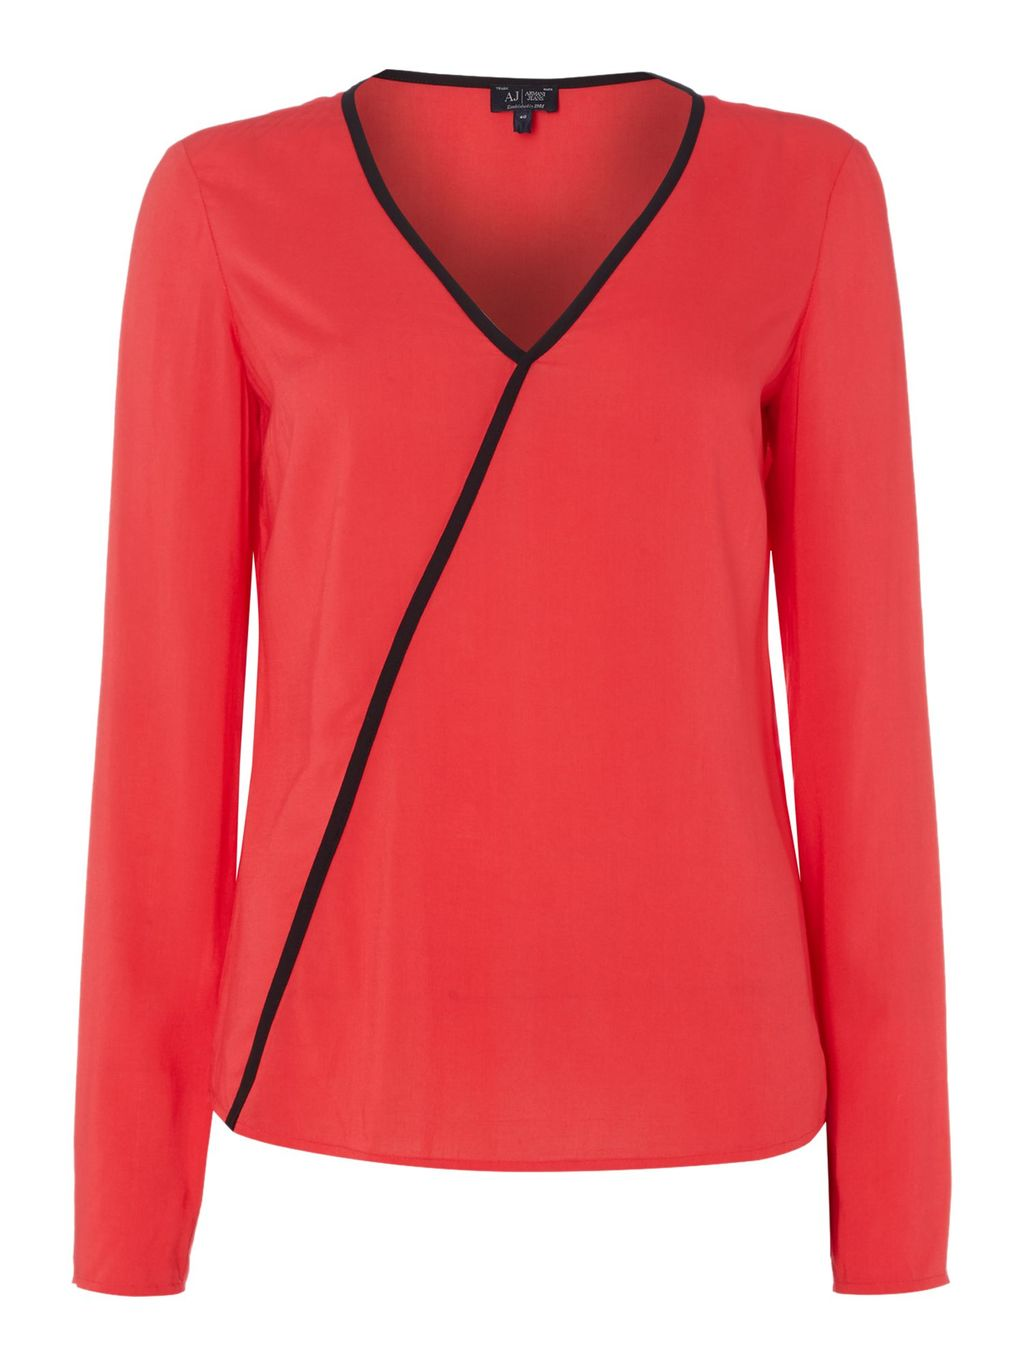 Long Sleeve V Neck Top With Contrast Piping, Red - neckline: v-neck; pattern: plain; predominant colour: true red; occasions: casual; length: standard; style: top; fibres: viscose/rayon - 100%; fit: body skimming; sleeve length: long sleeve; sleeve style: standard; pattern type: fabric; texture group: other - light to midweight; season: s/s 2016; wardrobe: highlight